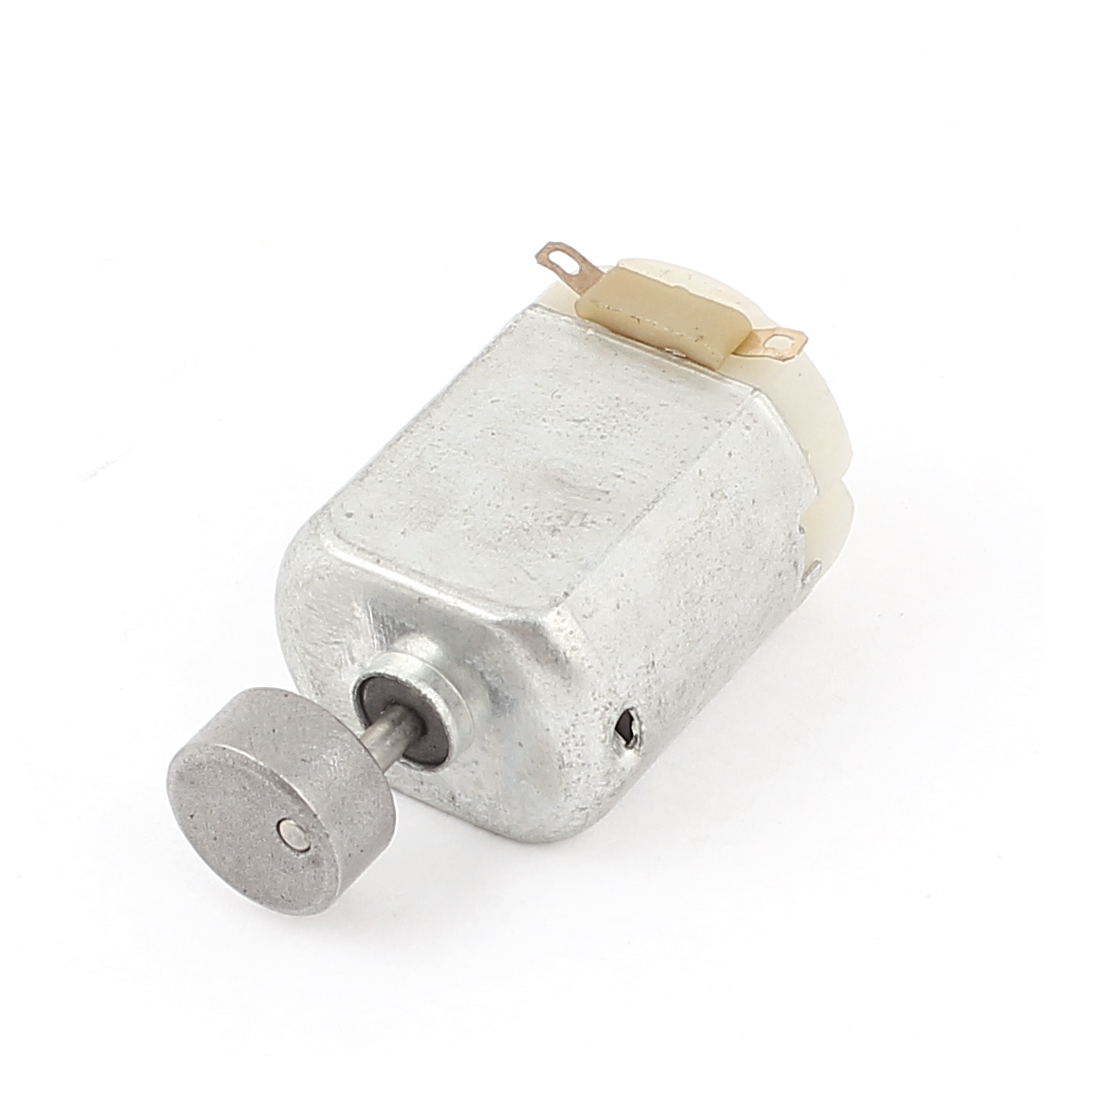 DC 3-6V 8000RPM High Speed Torque Massager Mini Vibration Motor 130